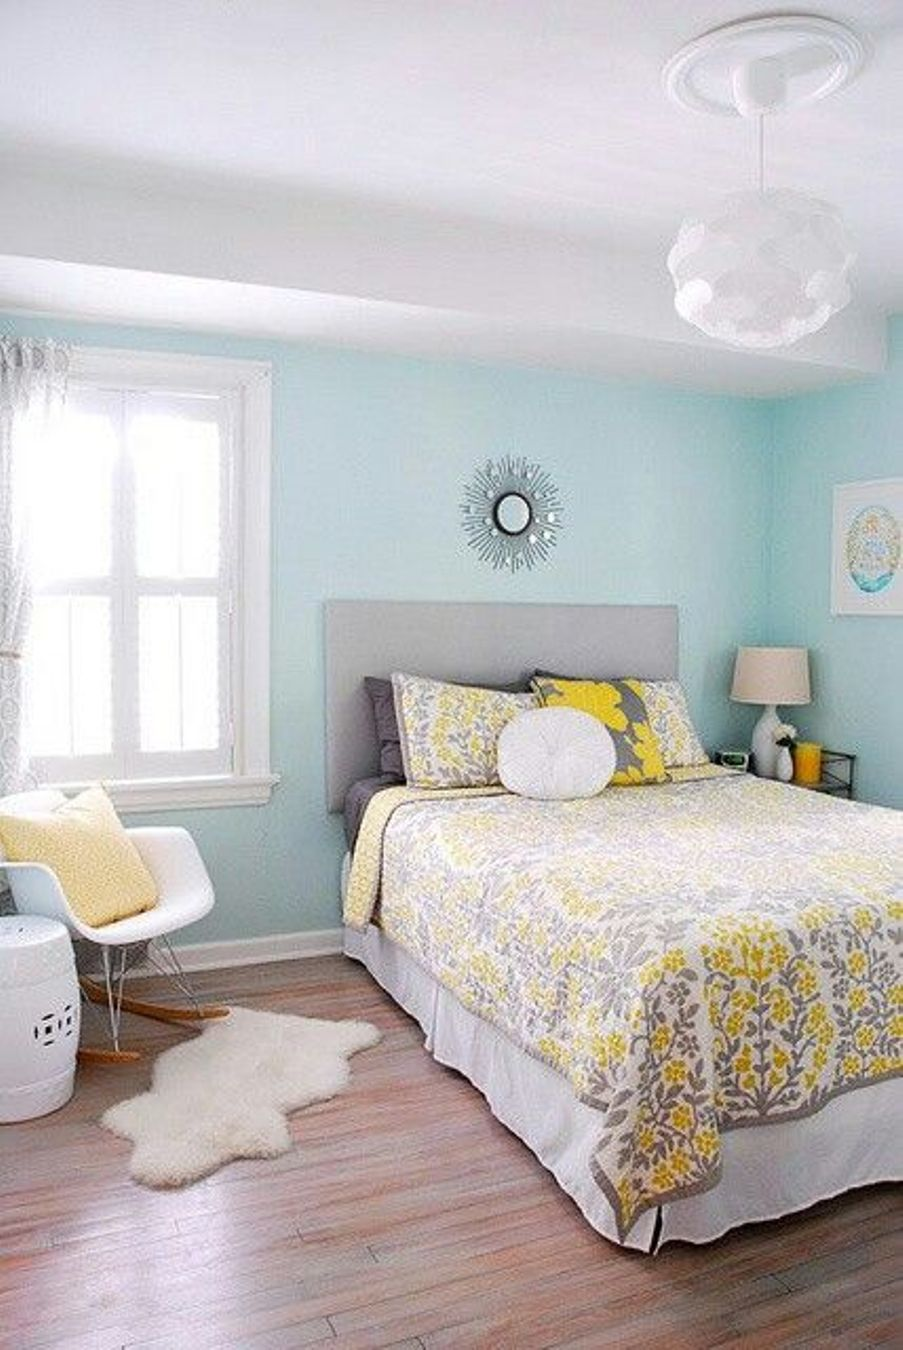 Genial Light Blue Best Paint Colors For Small Room With Glass Window And White  Ceiling And Wooden